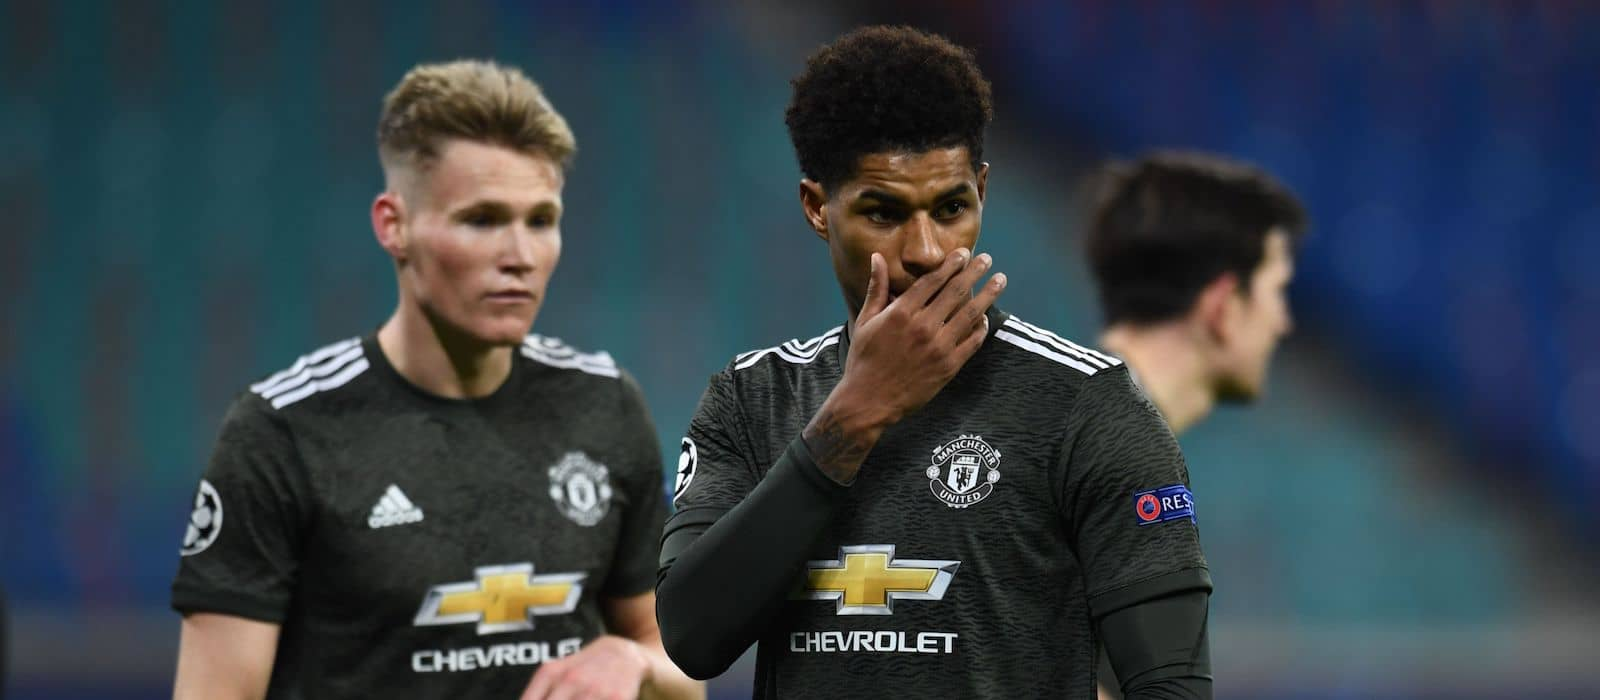 Marcus Rashford hopes to be at Manchester United for a long time